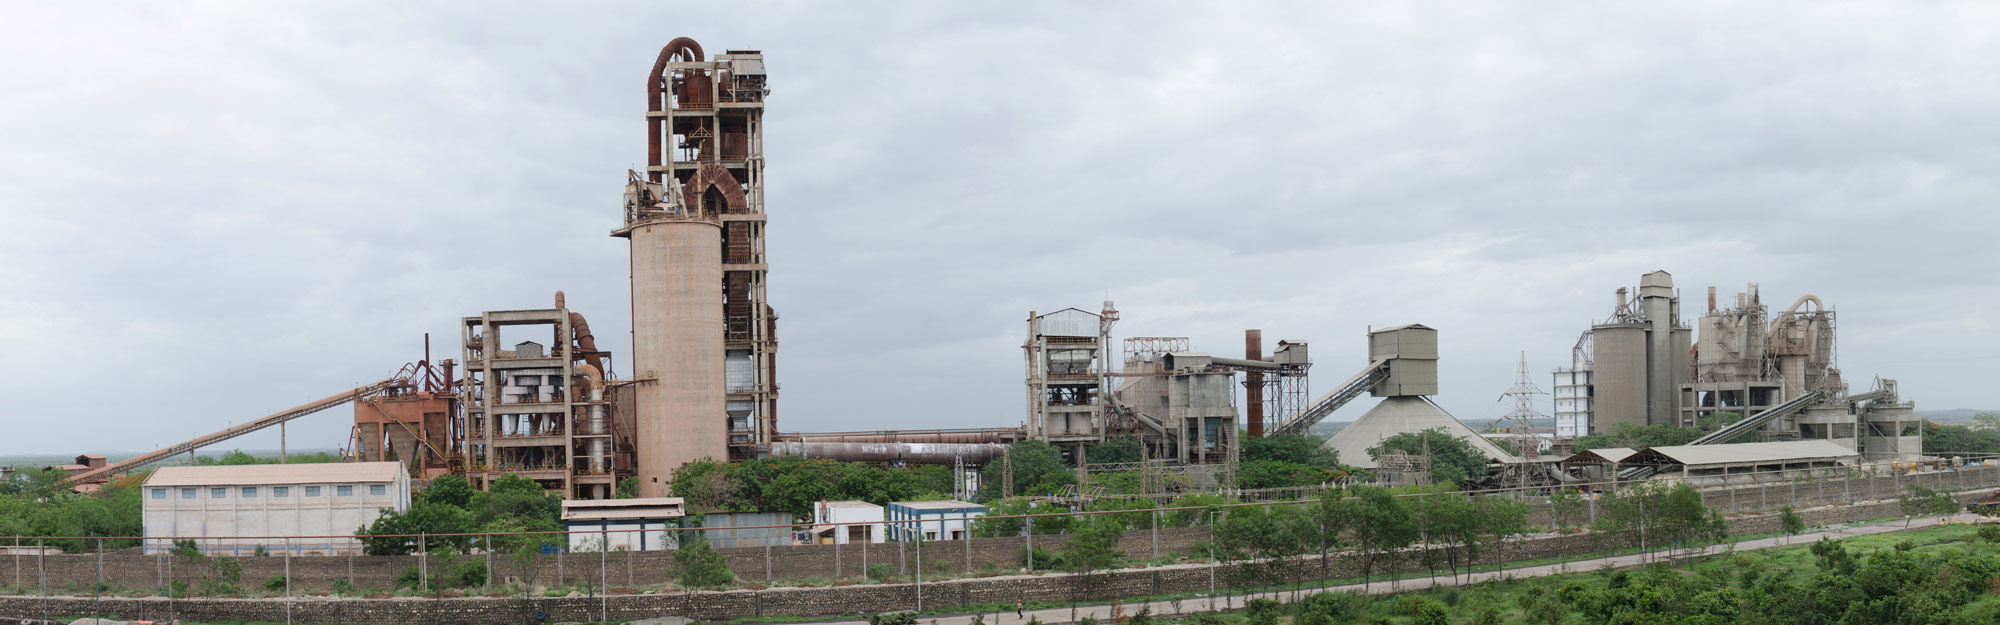 cement factory   Penna